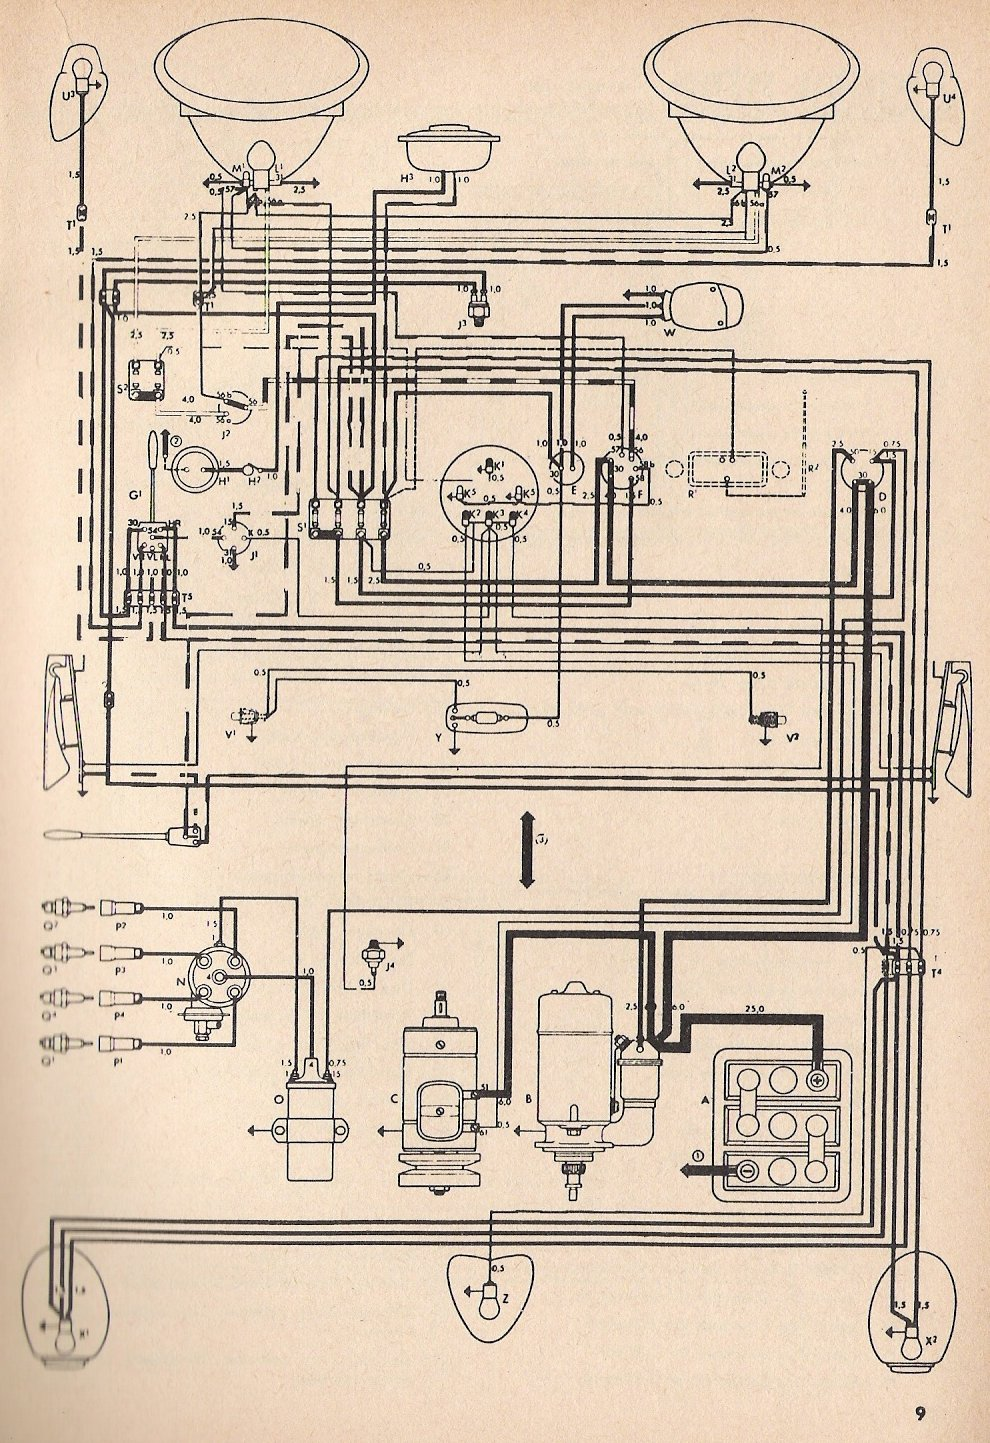 hight resolution of wiring diagram for 1971 super beetle